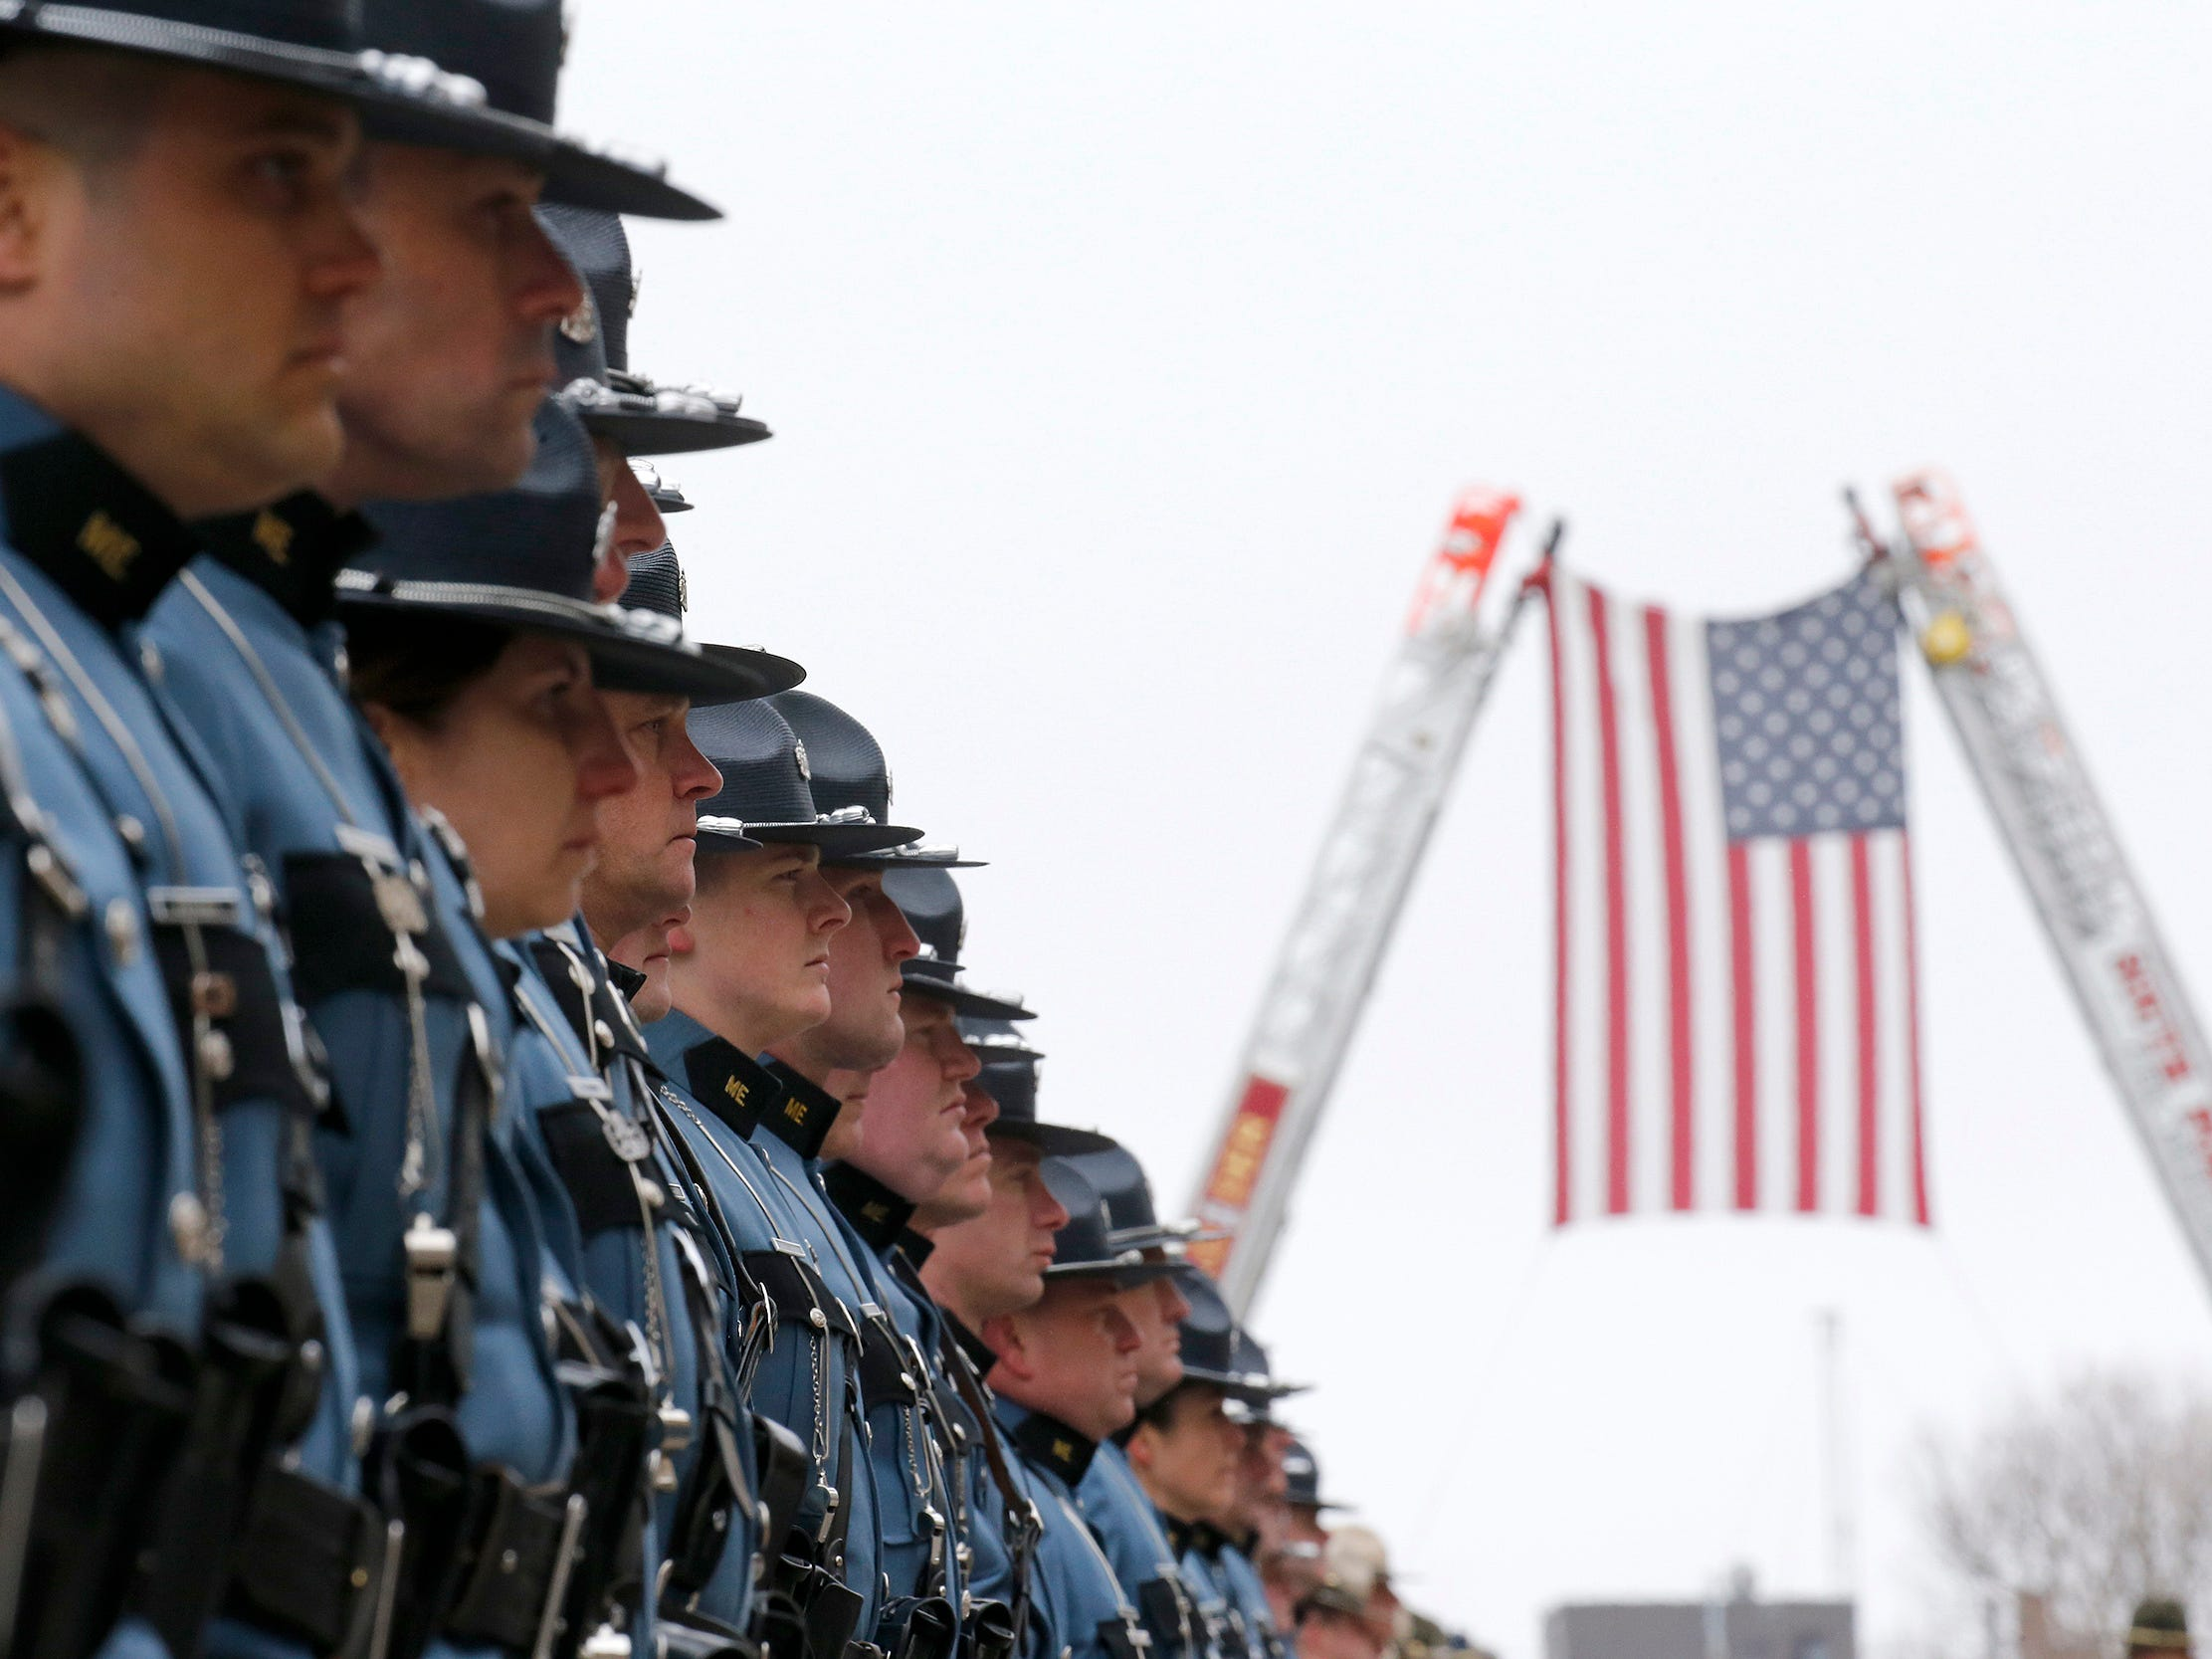 Members of the Maine State Police stand during the funeral procession for Maine State Police detective Ben Campbell Tuesday, April 9, 2019, in Portland, Maine.  Campbell was helping a motorist last week when he was struck and killed by a wheel that had dislodged from a logging truck.